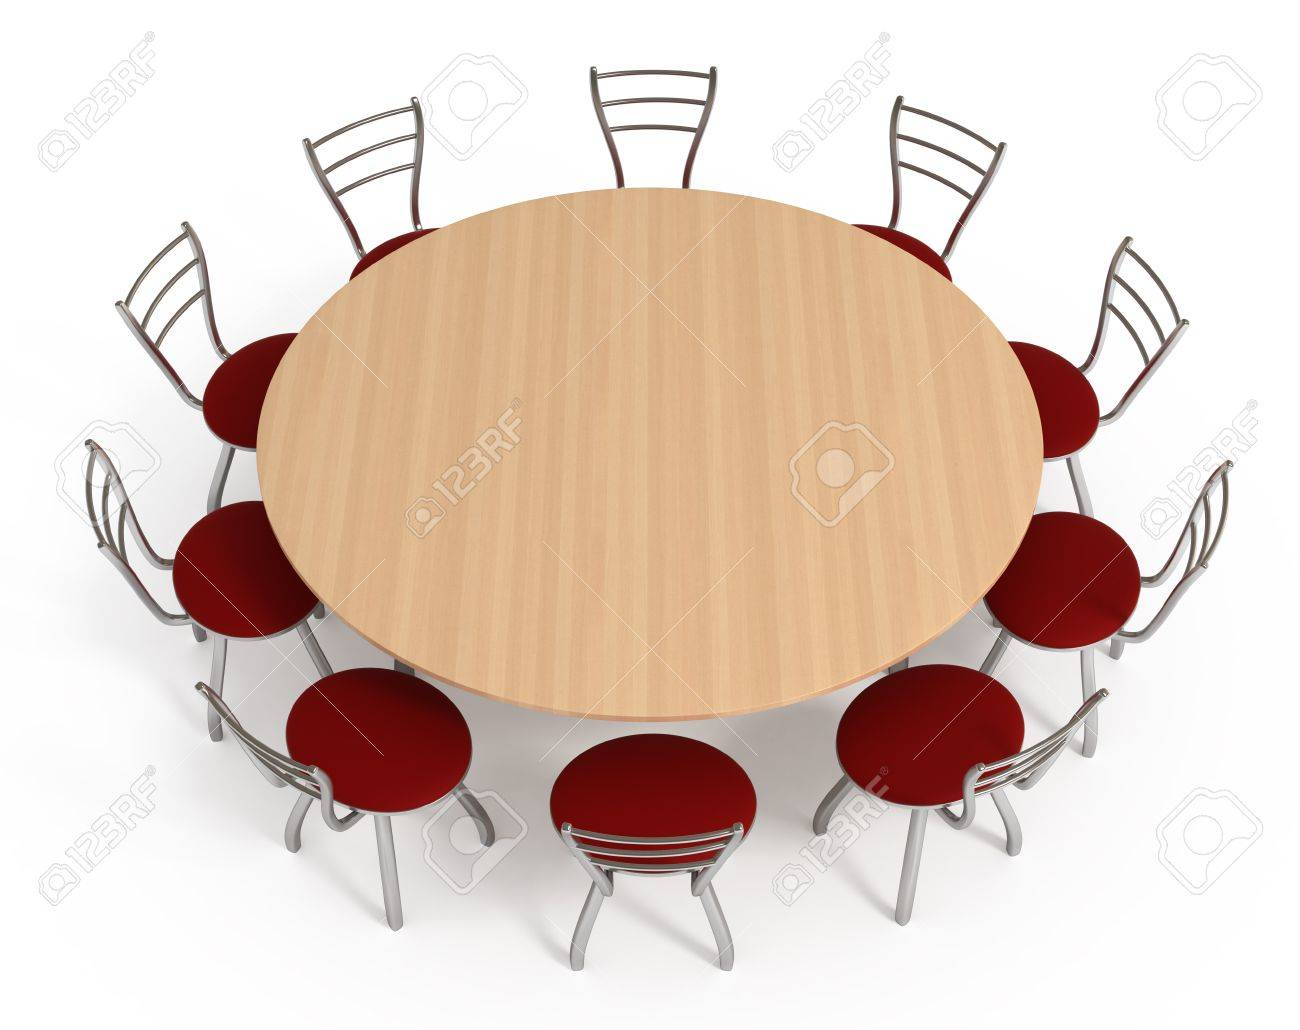 round table with chairs Round Table With Chairs, Isolated On White , 3d Illustration Stock  round table with chairs